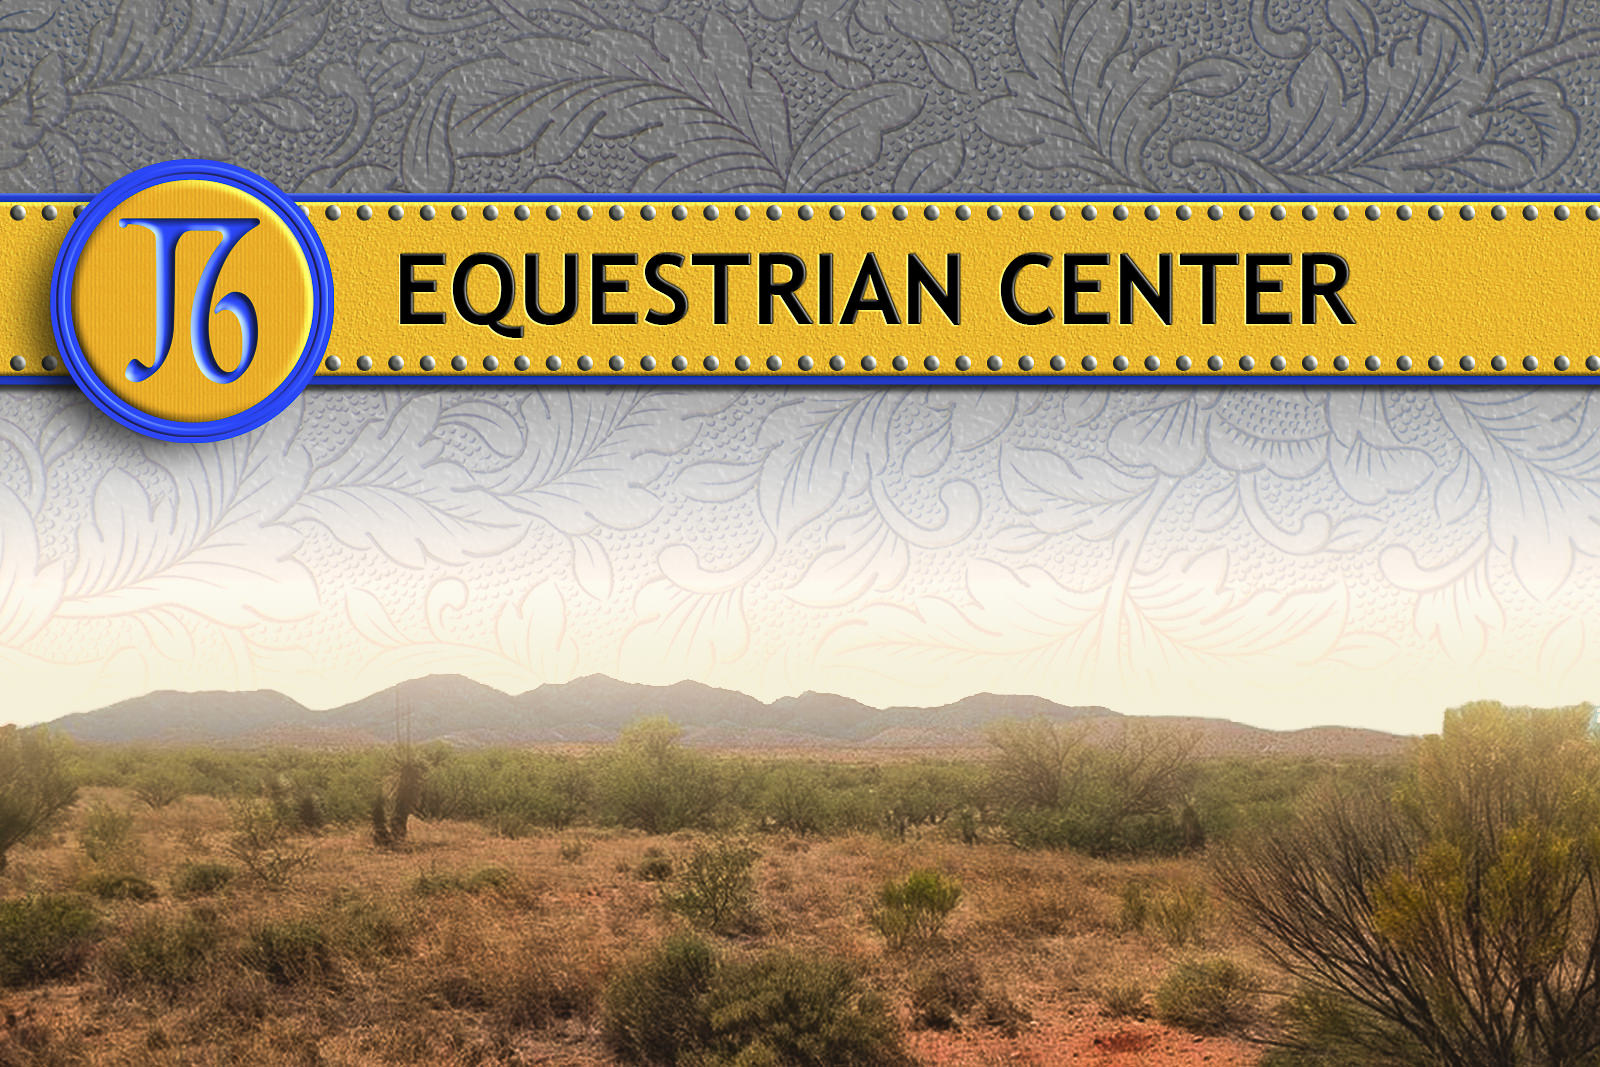 J6 Equestrian Center, Benson Arizona